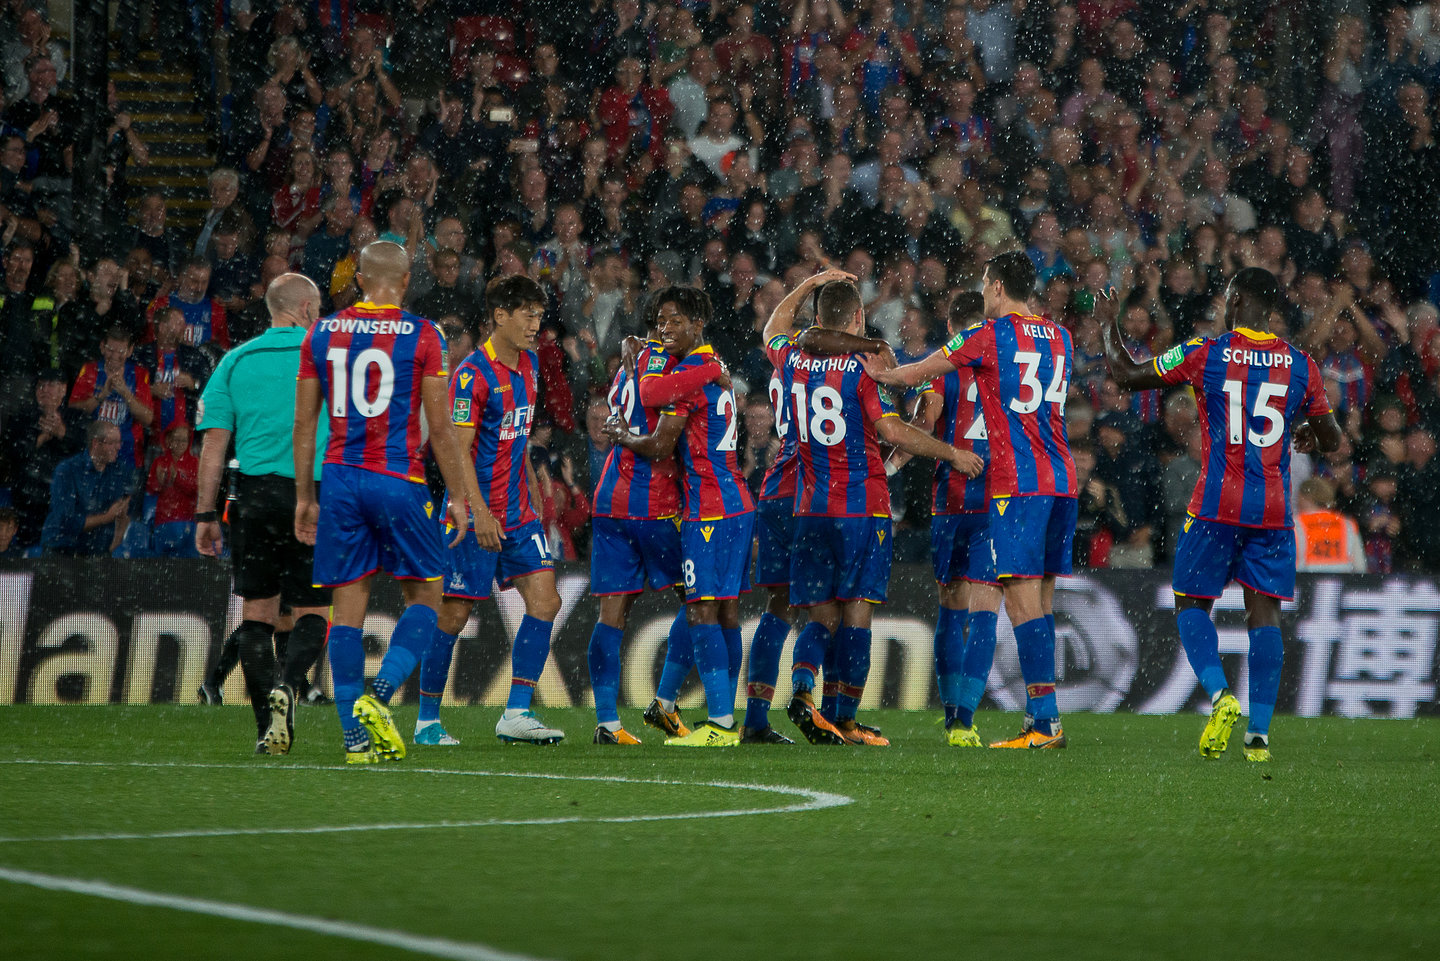 Crystal Palace V Ipswich Town